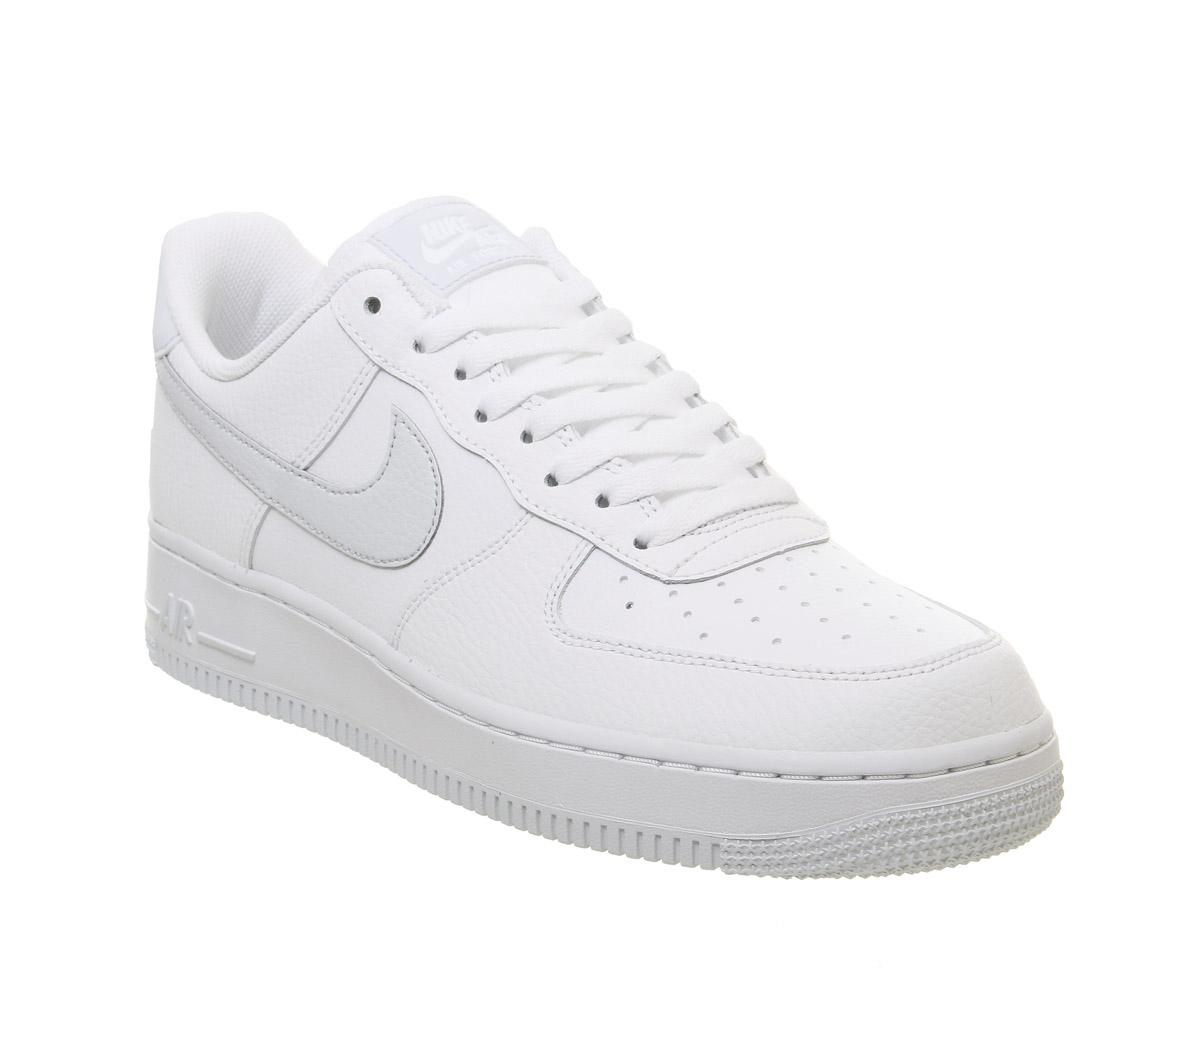 Nike Air Force 1 '07 Trainers White